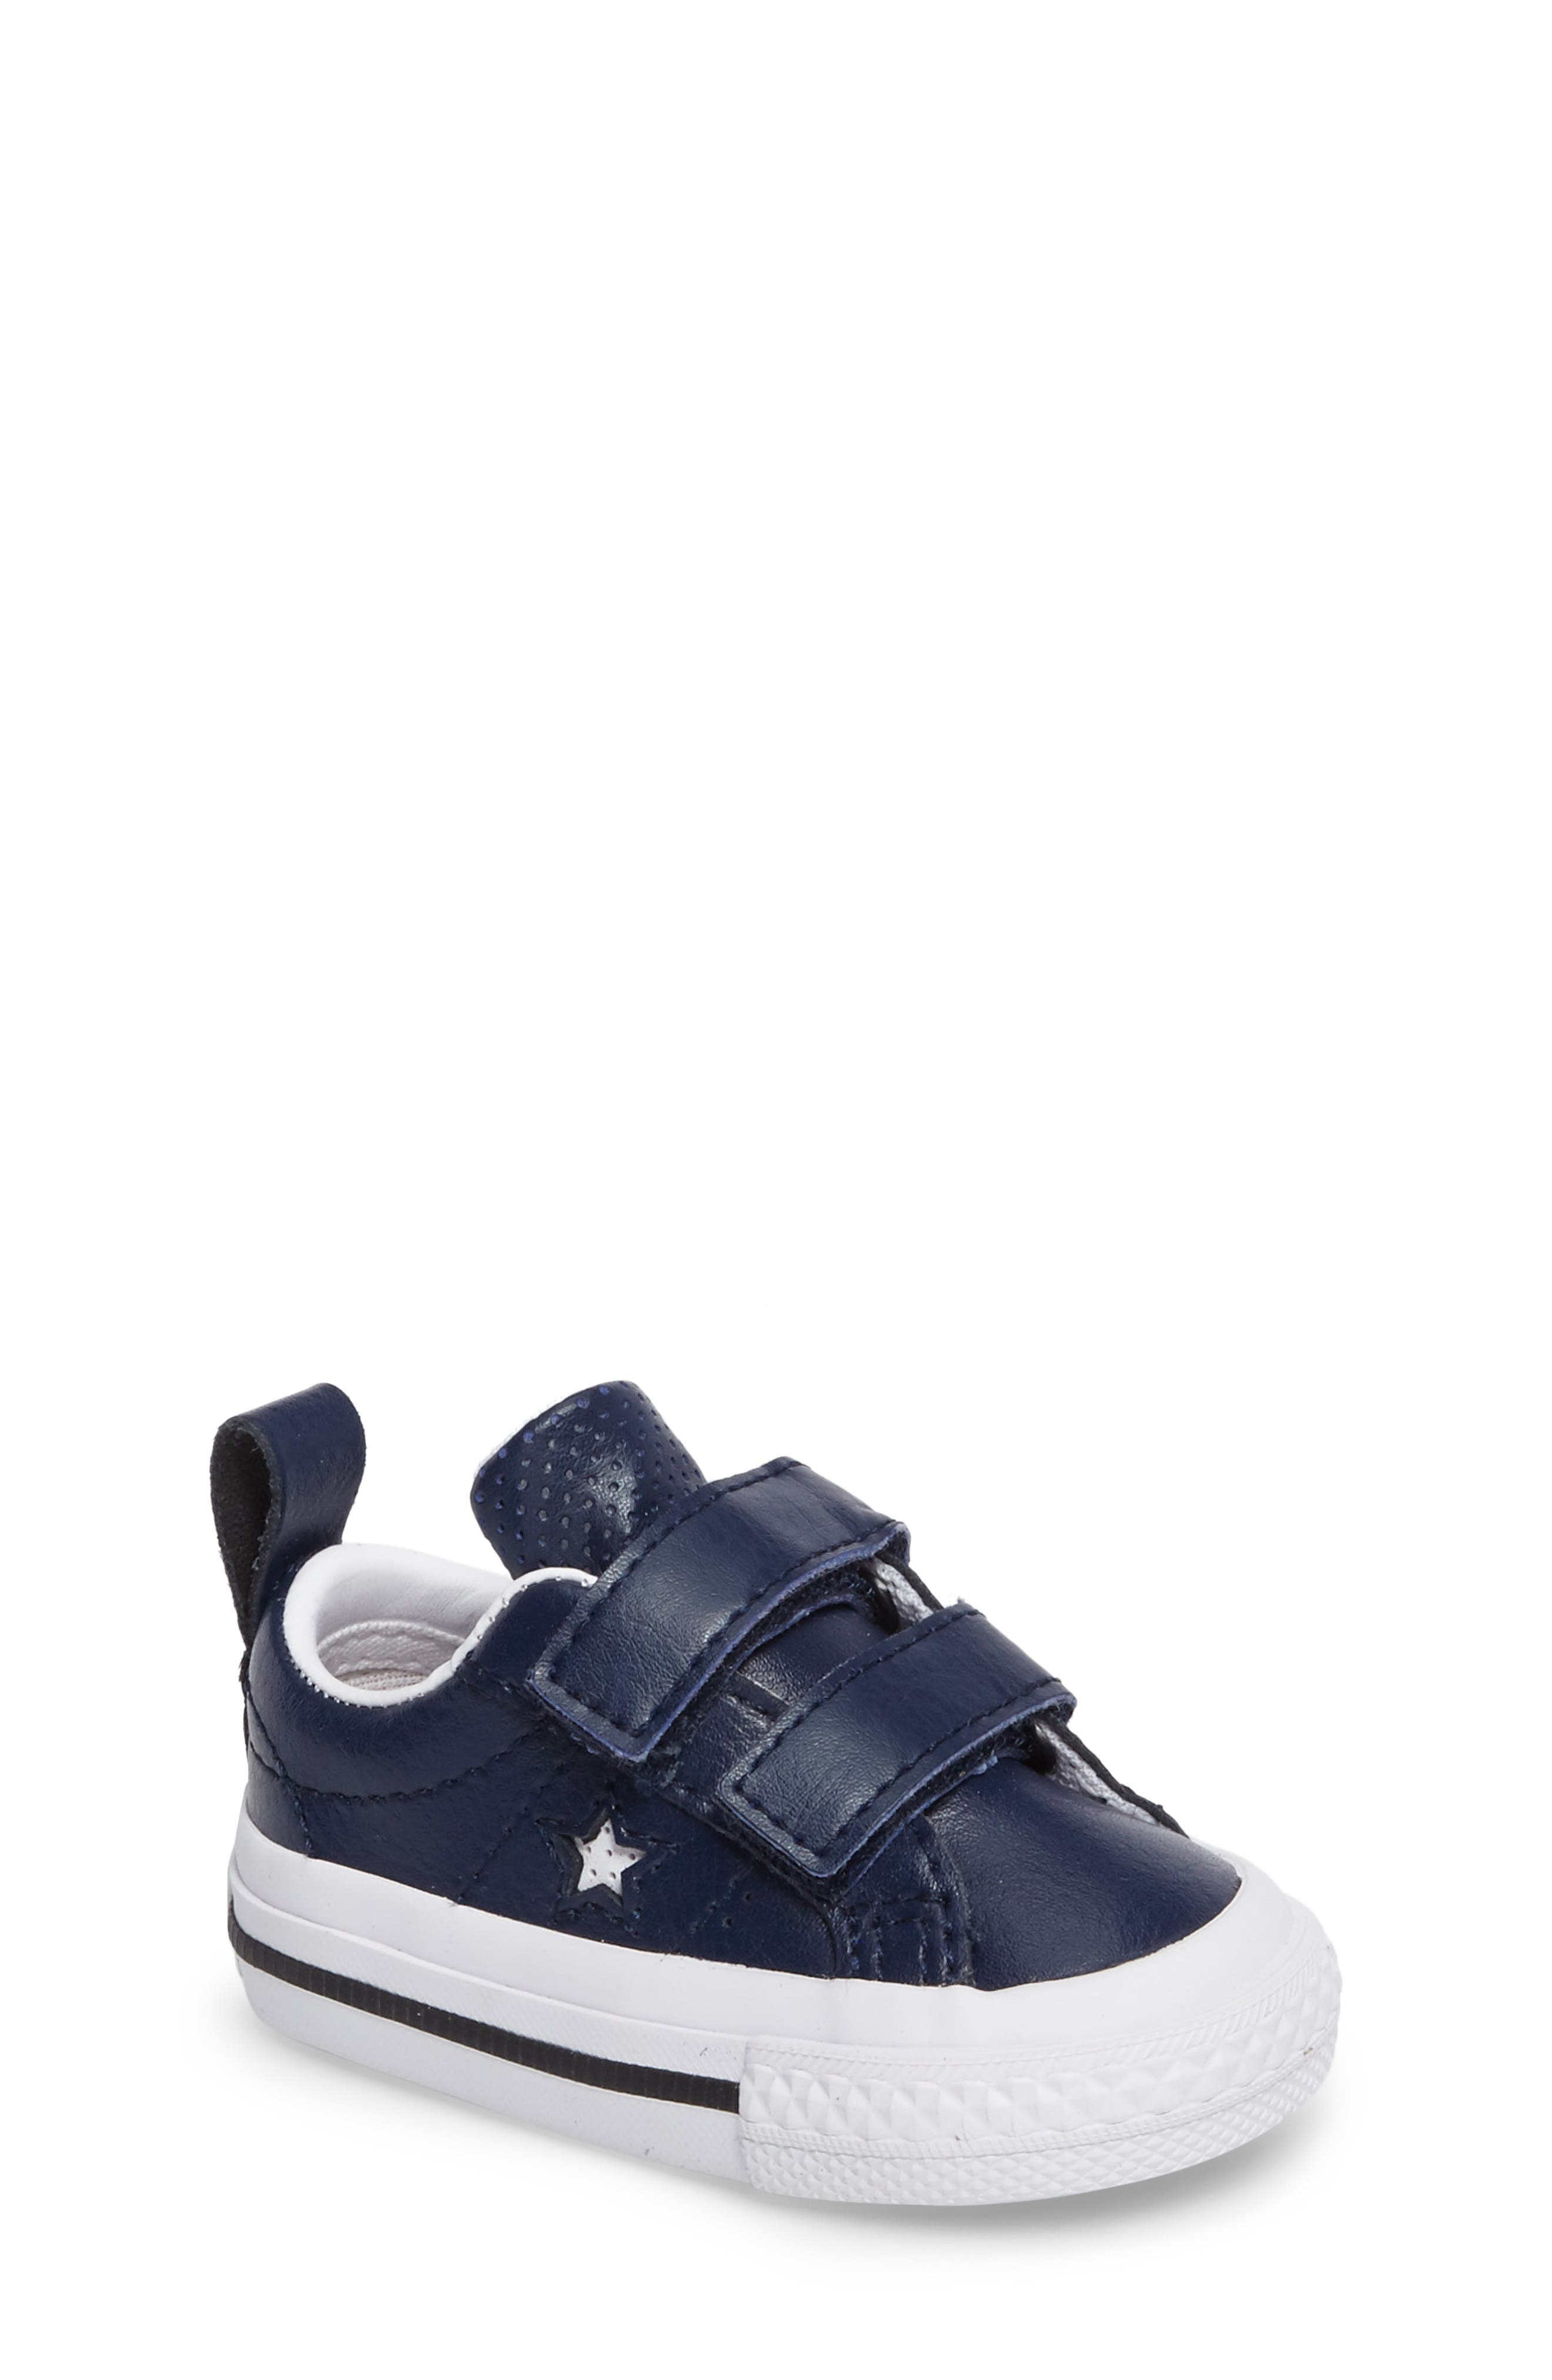 Alternate Image 1 Selected - Converse Chuck Taylor® All Star® One Star Sneaker (Baby, Walker & Toddler)